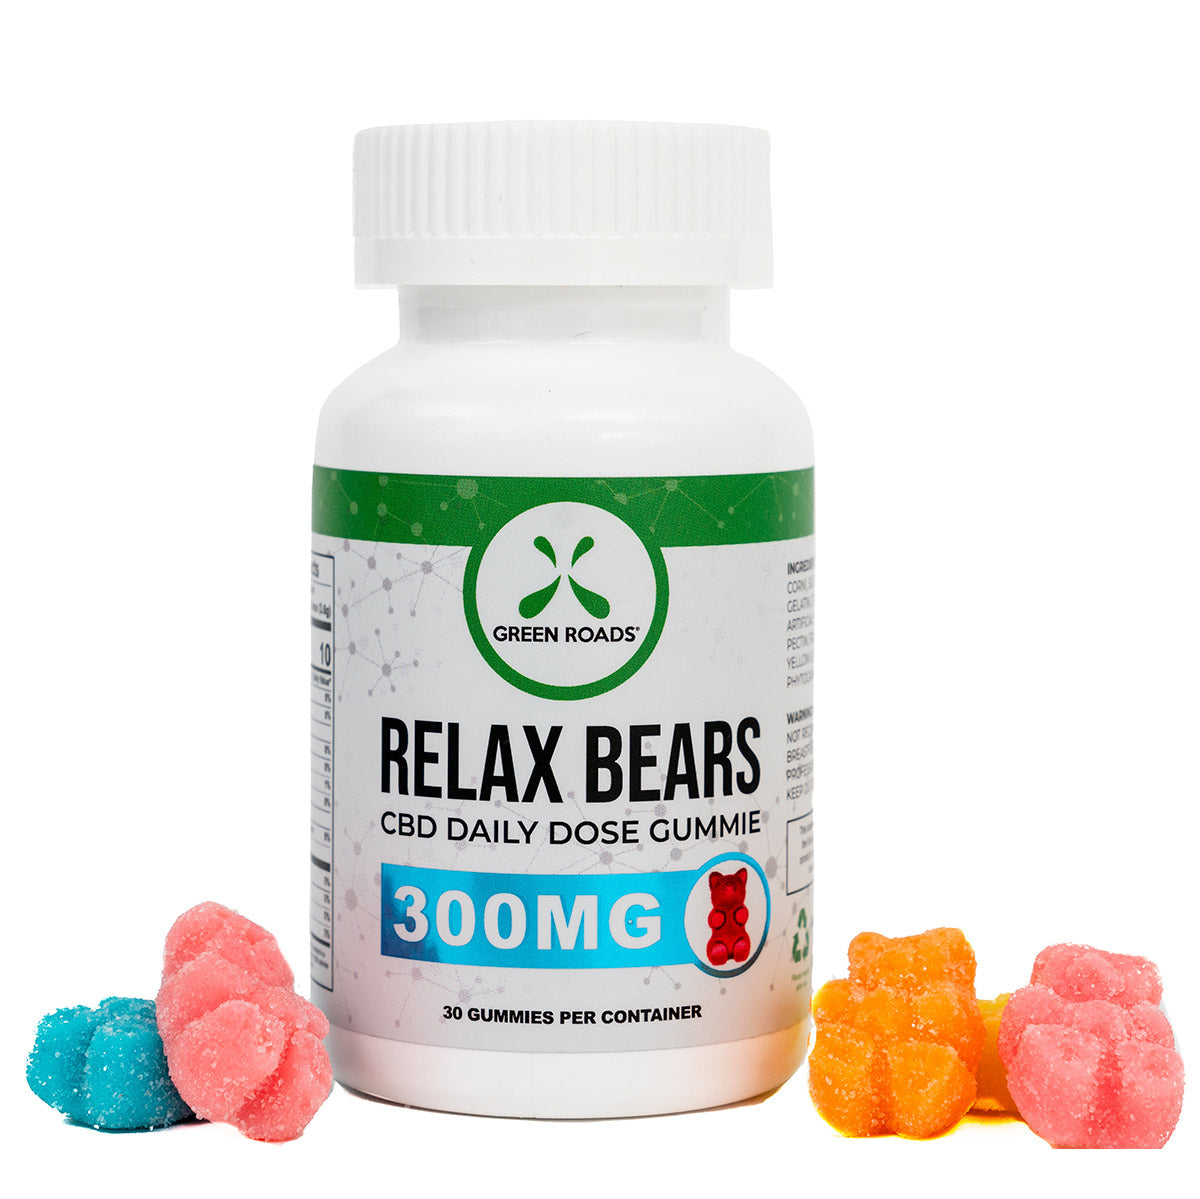 Green Roads CBD Relax Bears Gummies